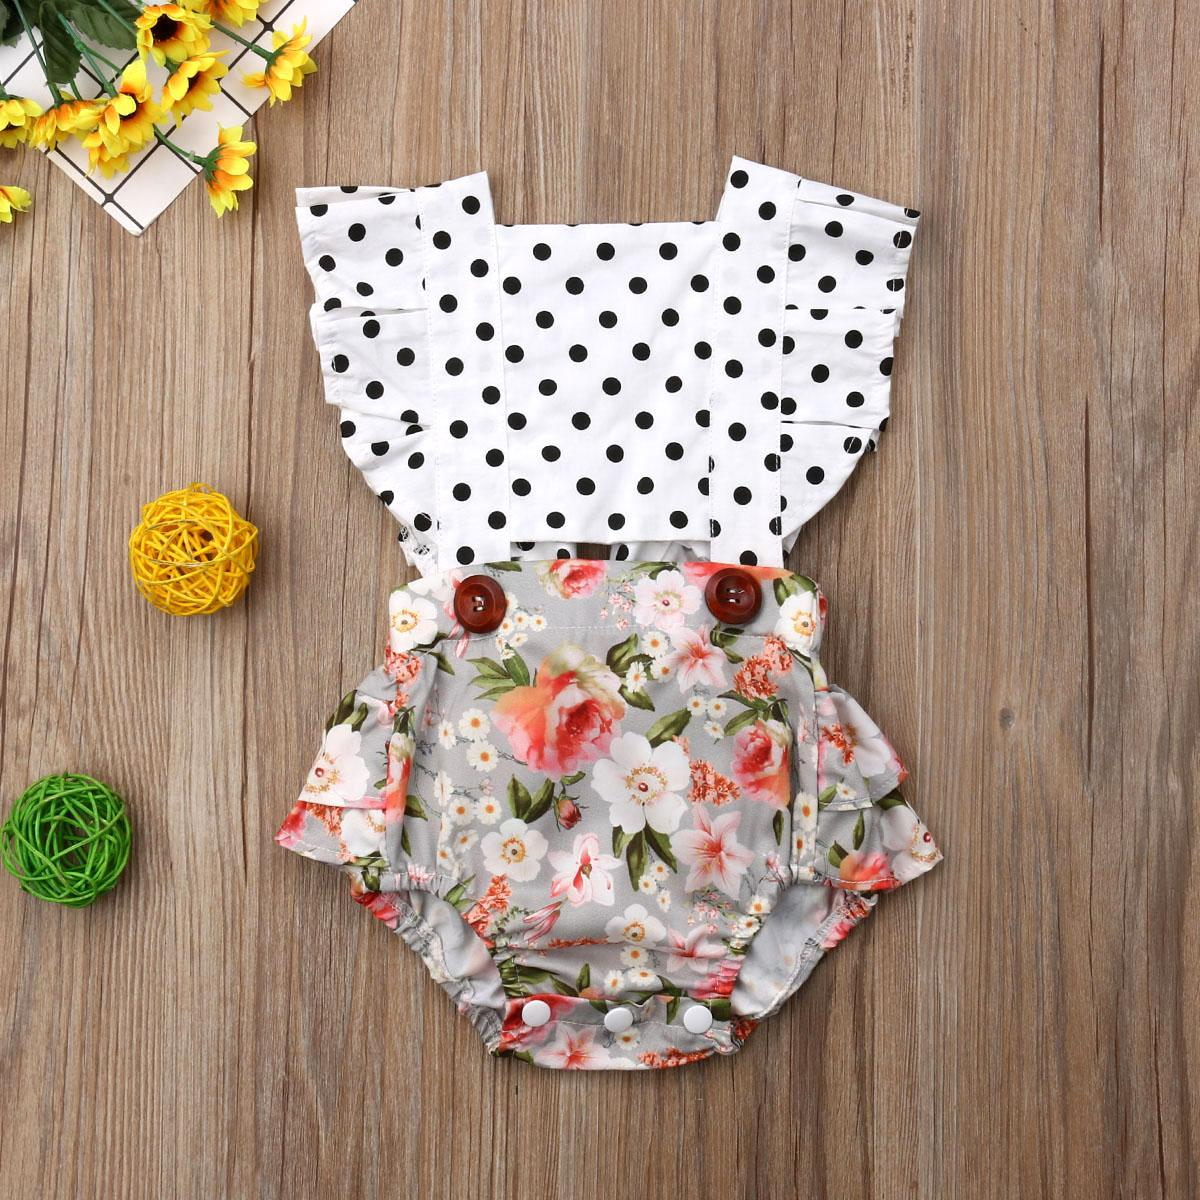 Pudcoco 2019 neugeborene Kind-Baby-Kleidung Spitze Splice Body Backless Overall Outfit sunsuit Babykleidung Hot Sell